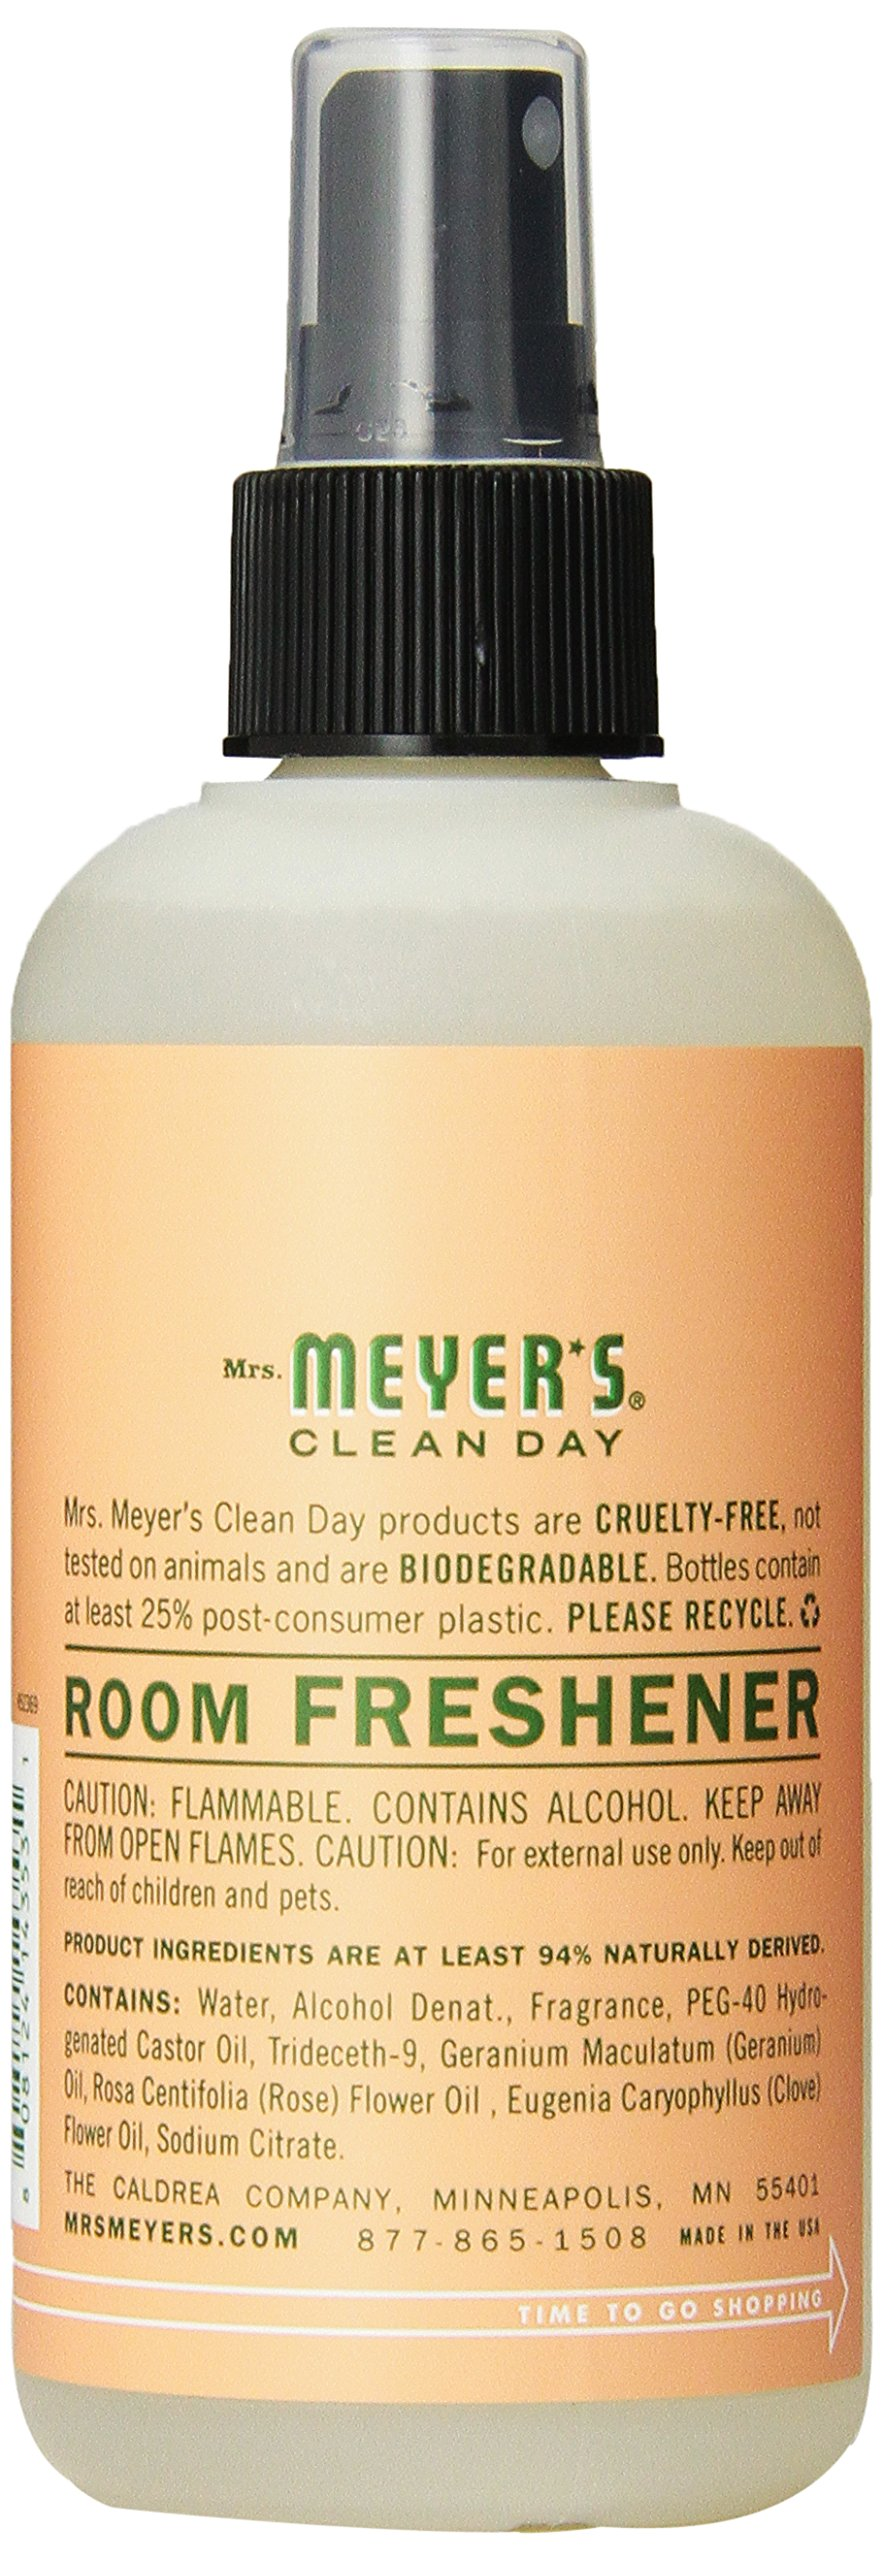 Mrs. Meyer's Geranium Room Freshener, 8-Fluid Ounce Bottles (Pack of 6) by Mrs. Meyer's Clean Day (Image #3)